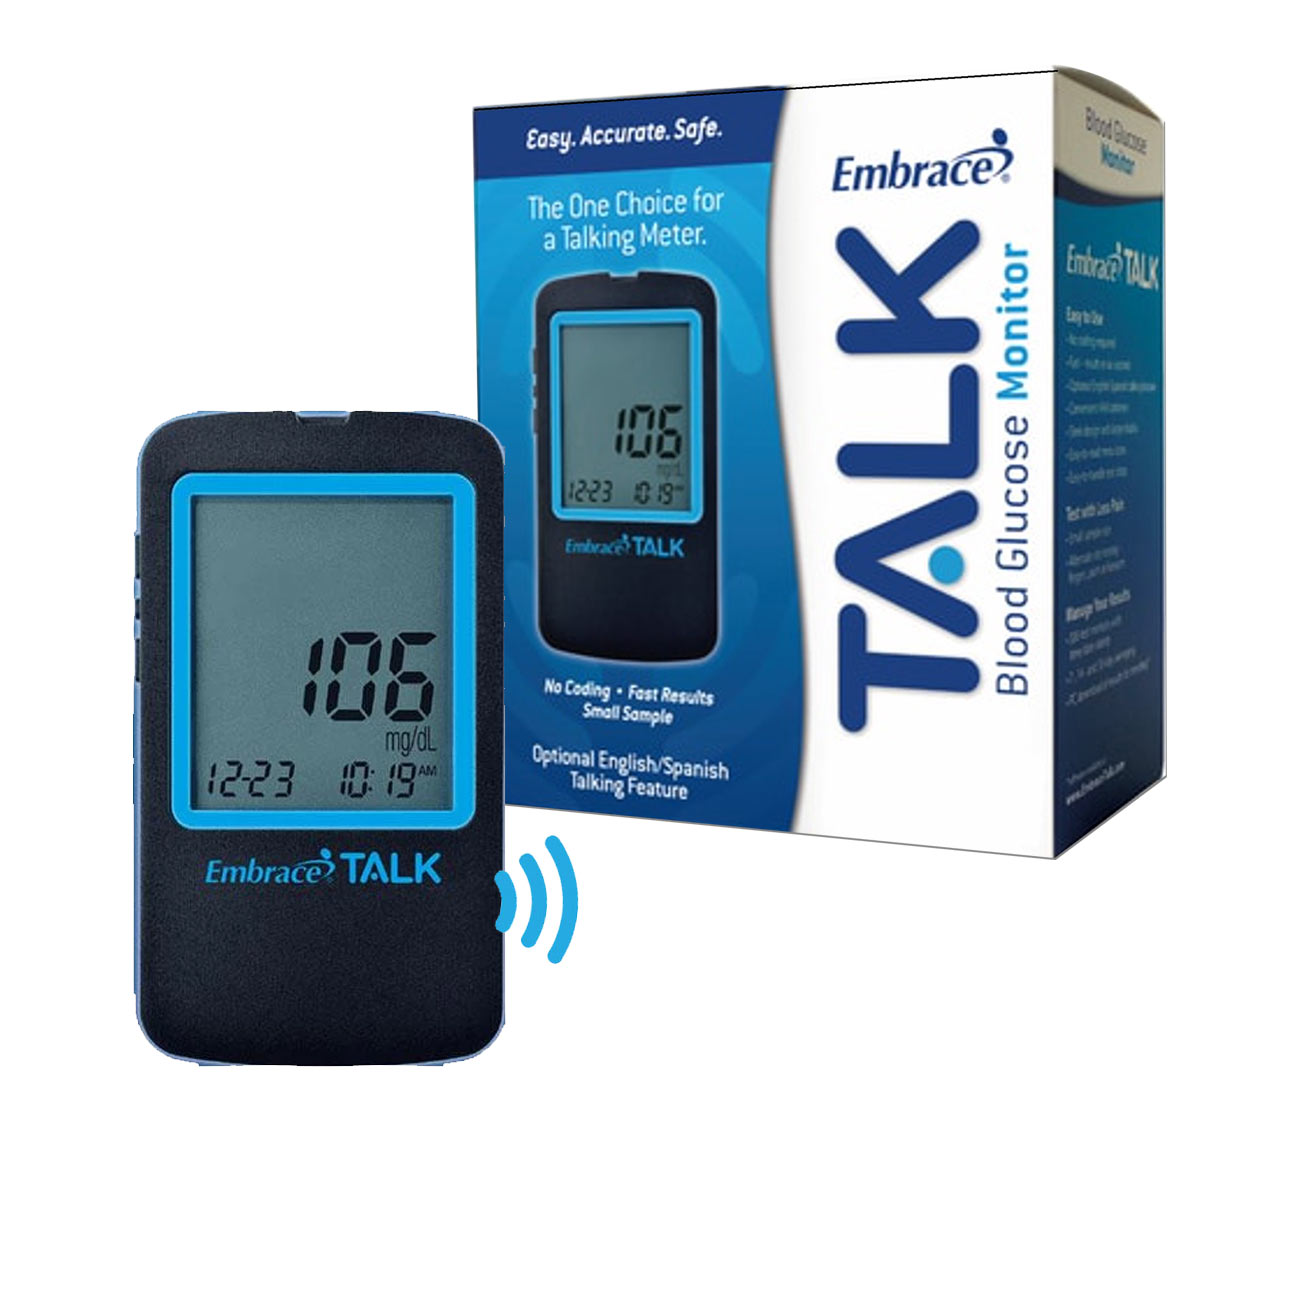 Talking Blood Glucose Monitoring System - English-Spanish